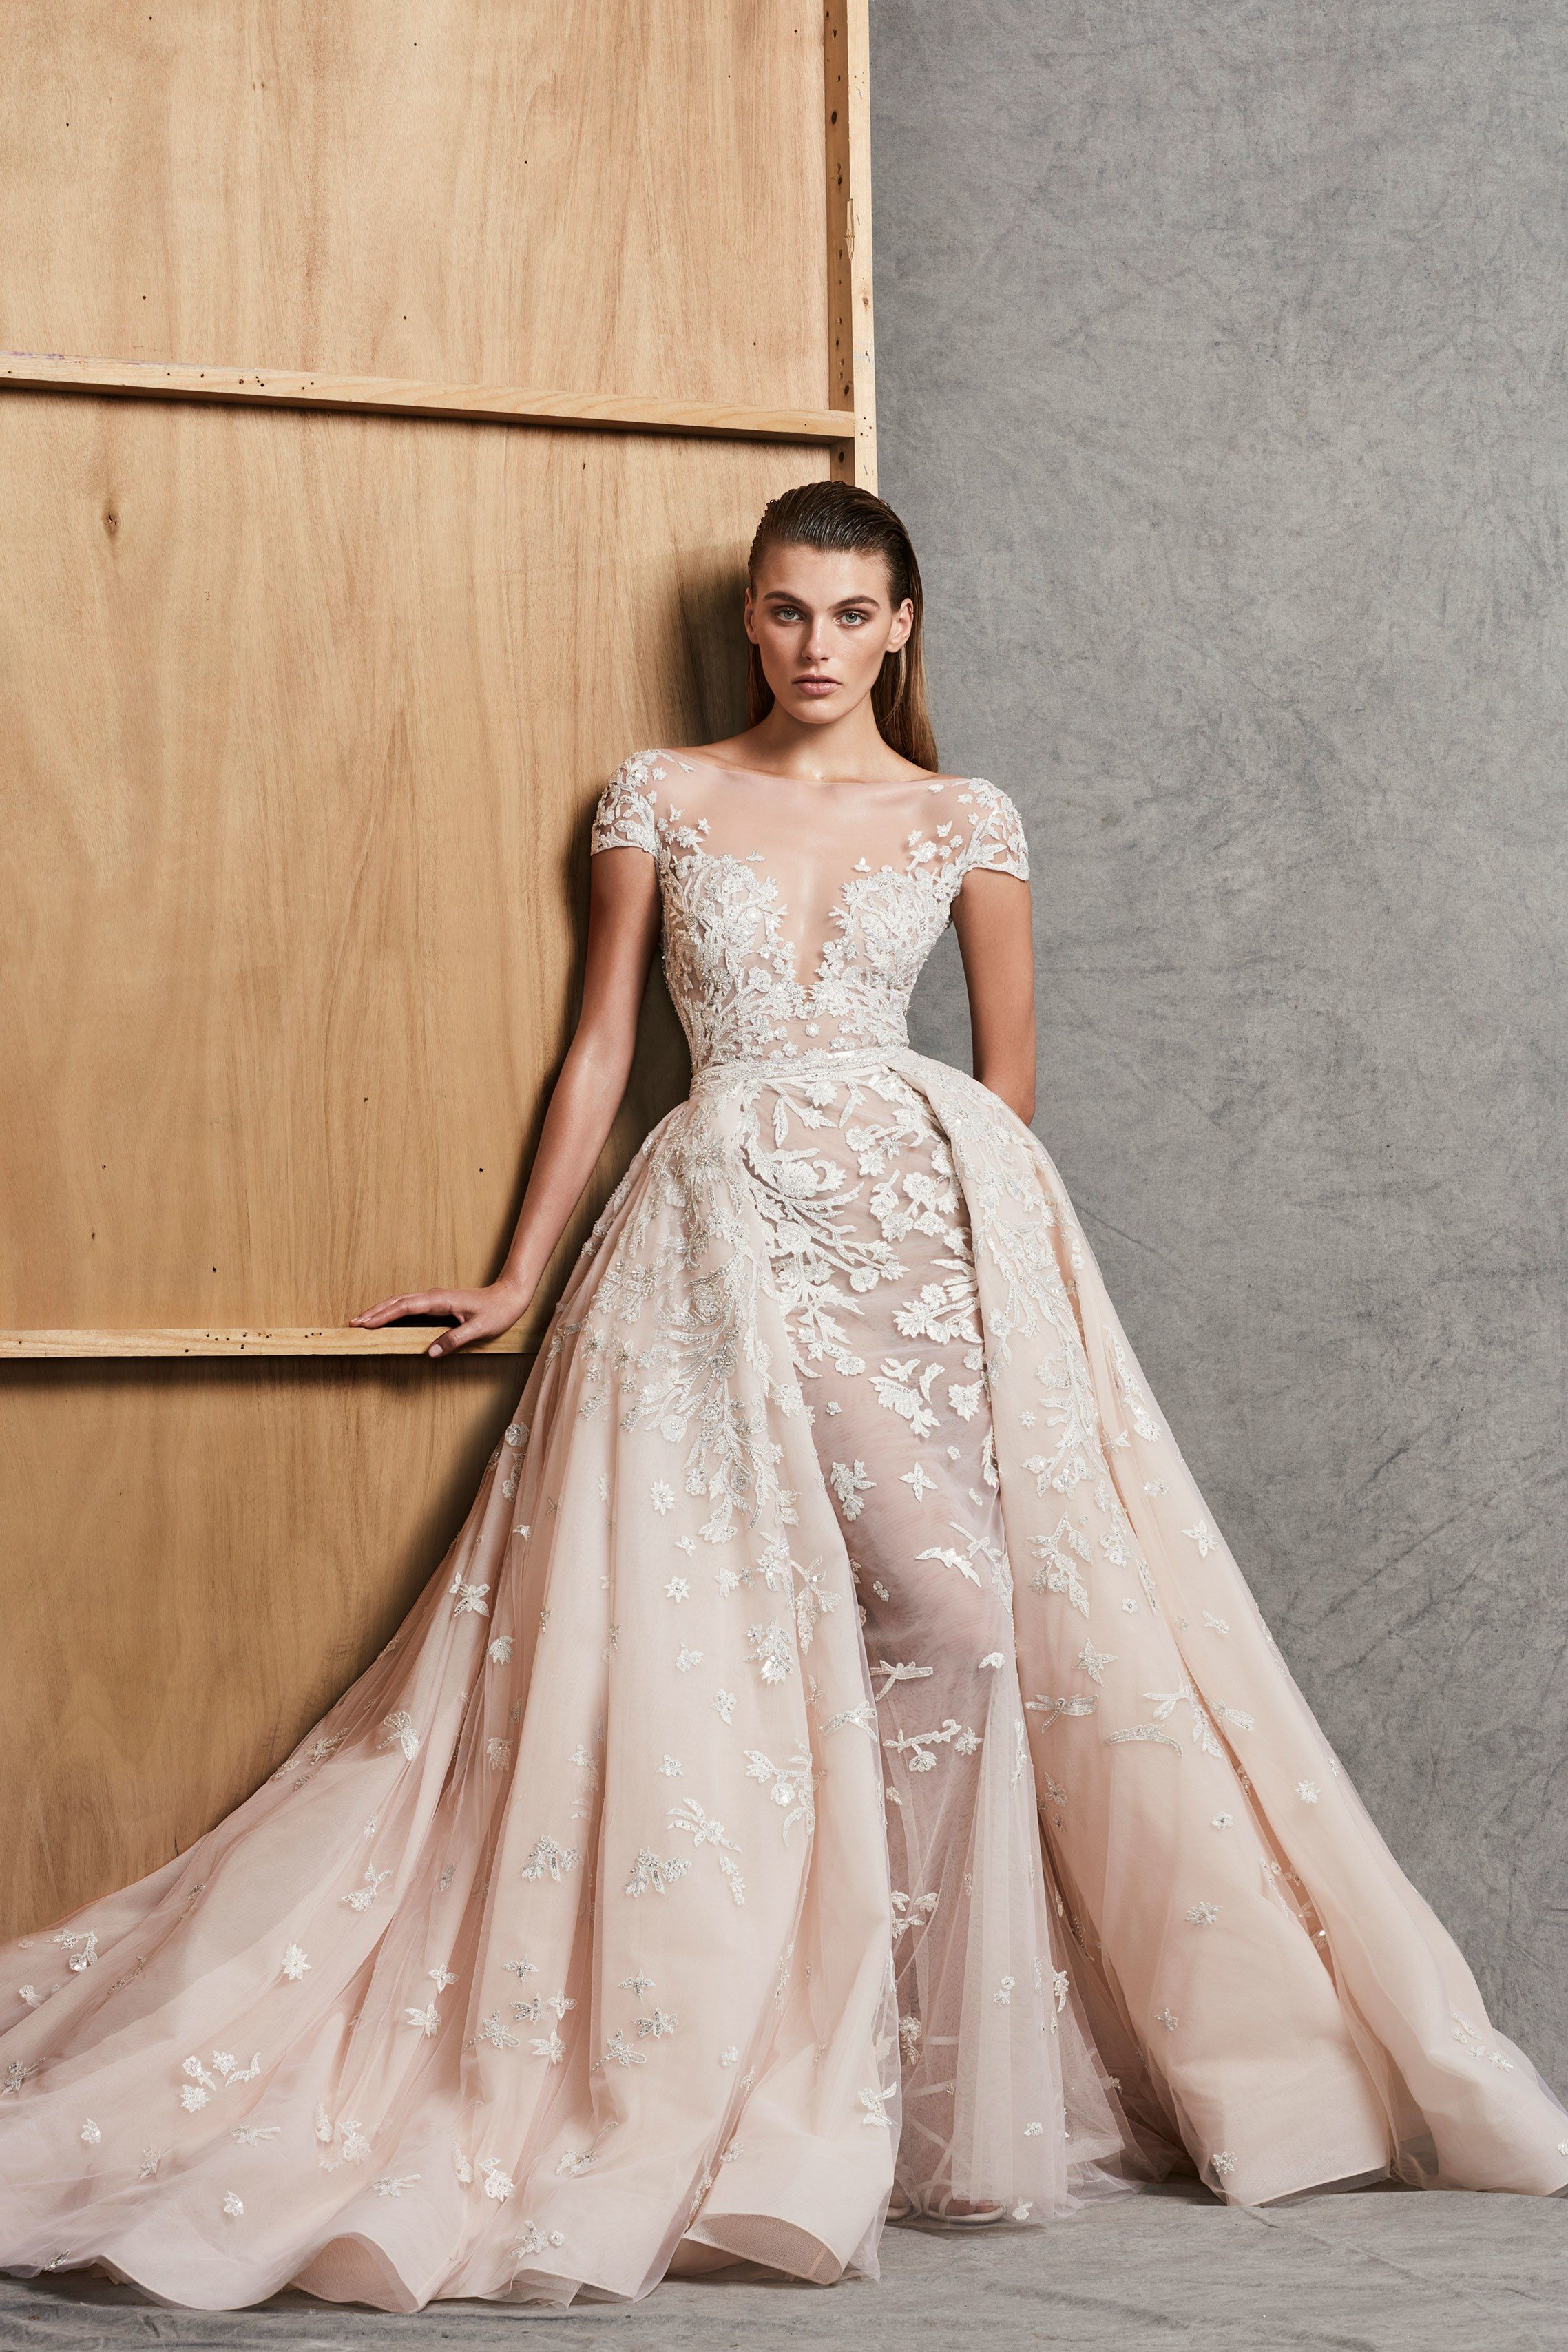 Zuhair Murad Bridal Fall 2018 Fashion Show With Images Wedding